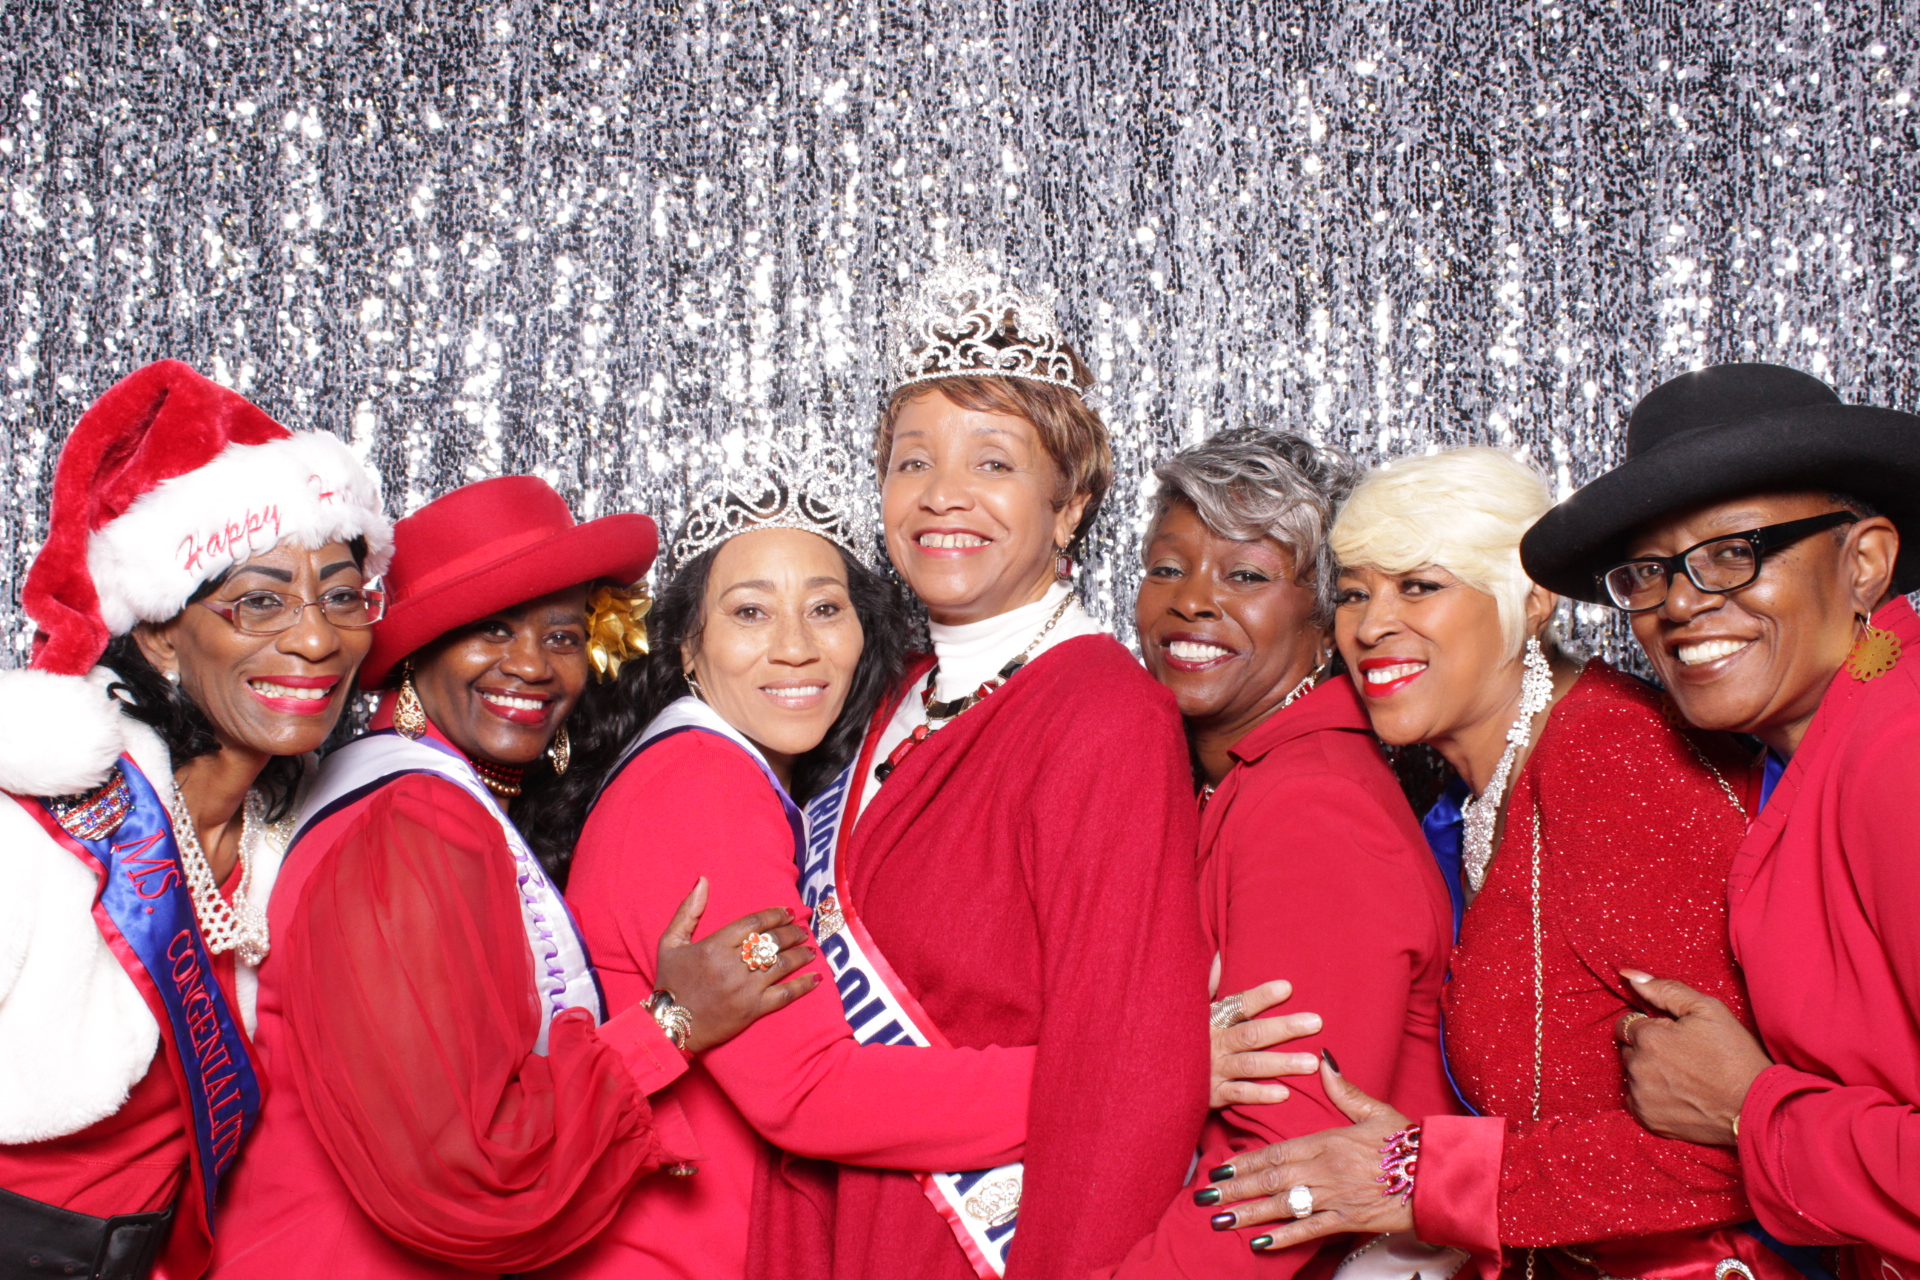 ELDER ABUSE PREVENTION COMMITTEE | HOT PINK PHOTO BOOTH